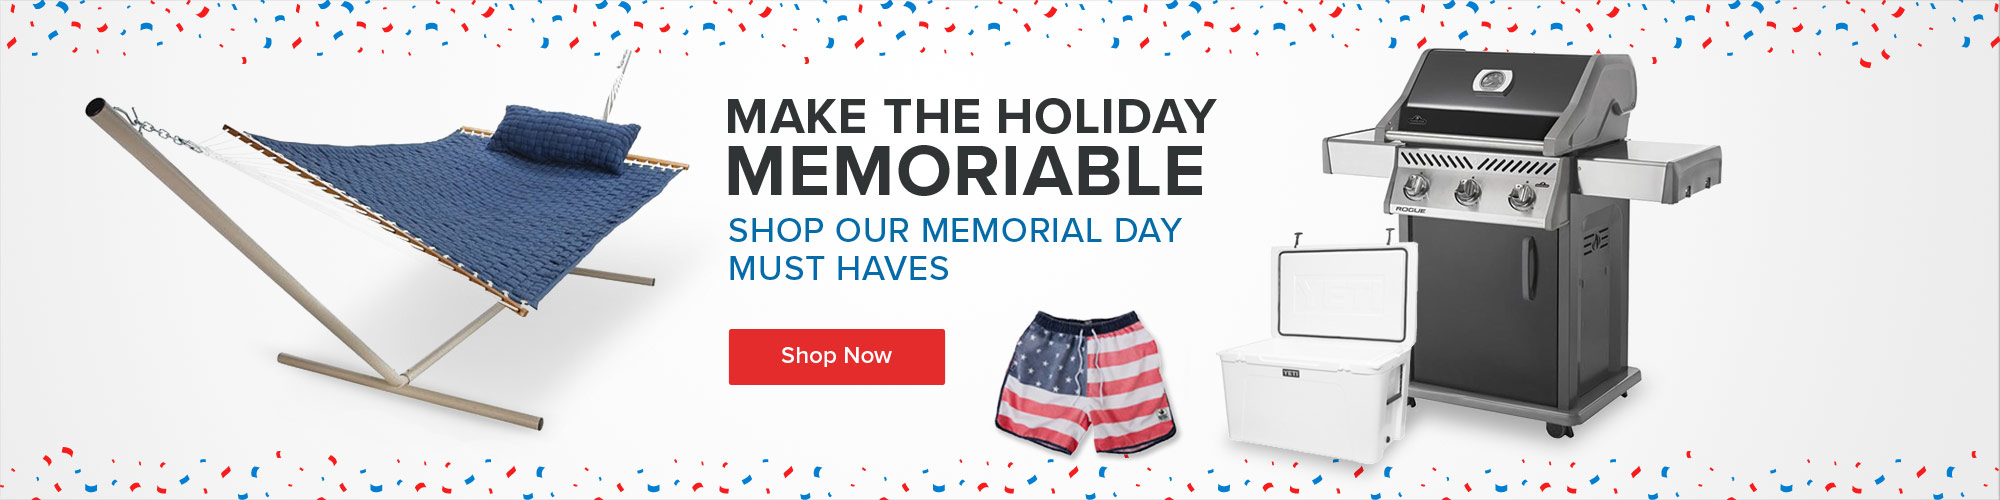 Memorial Day Must-Haves